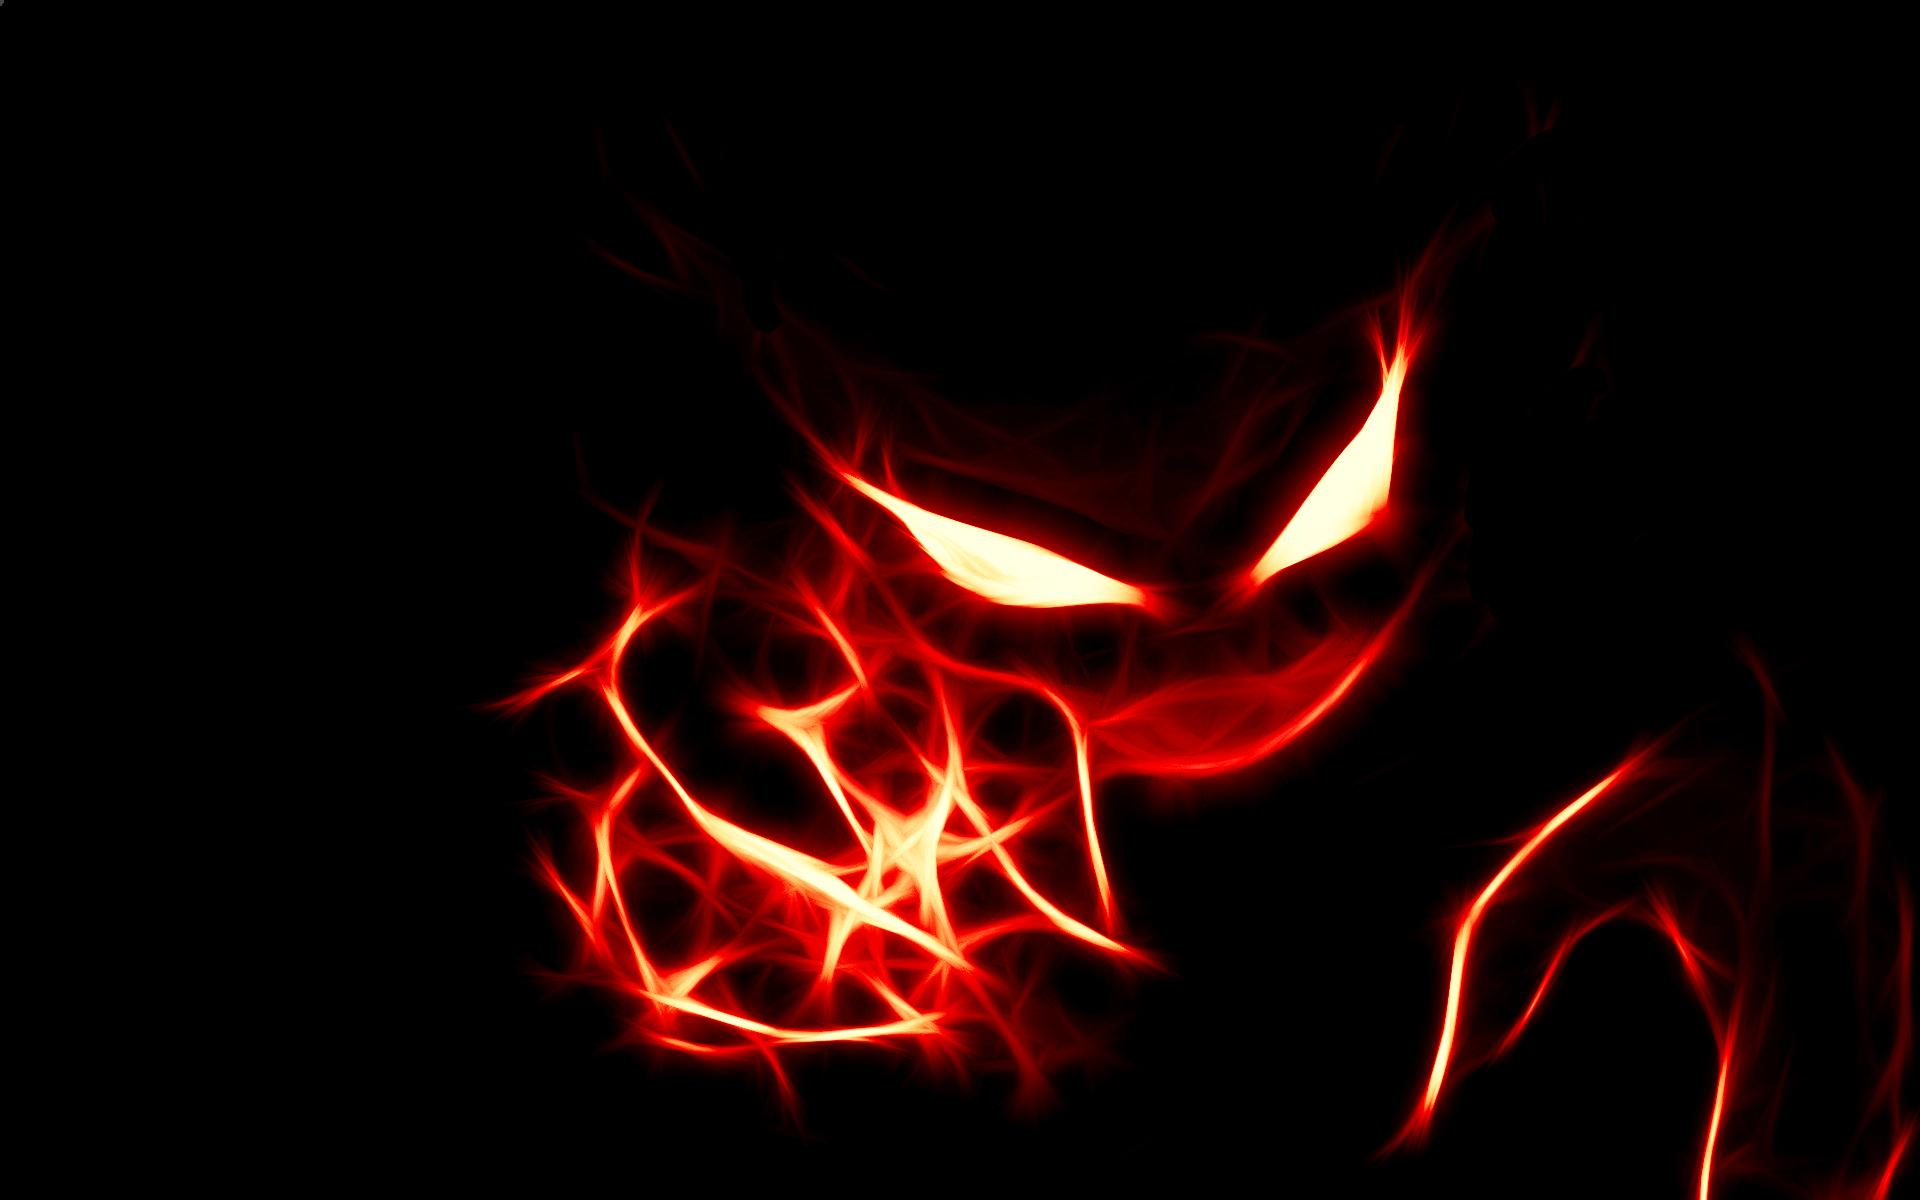 haunter hd wallpapers - photo #22